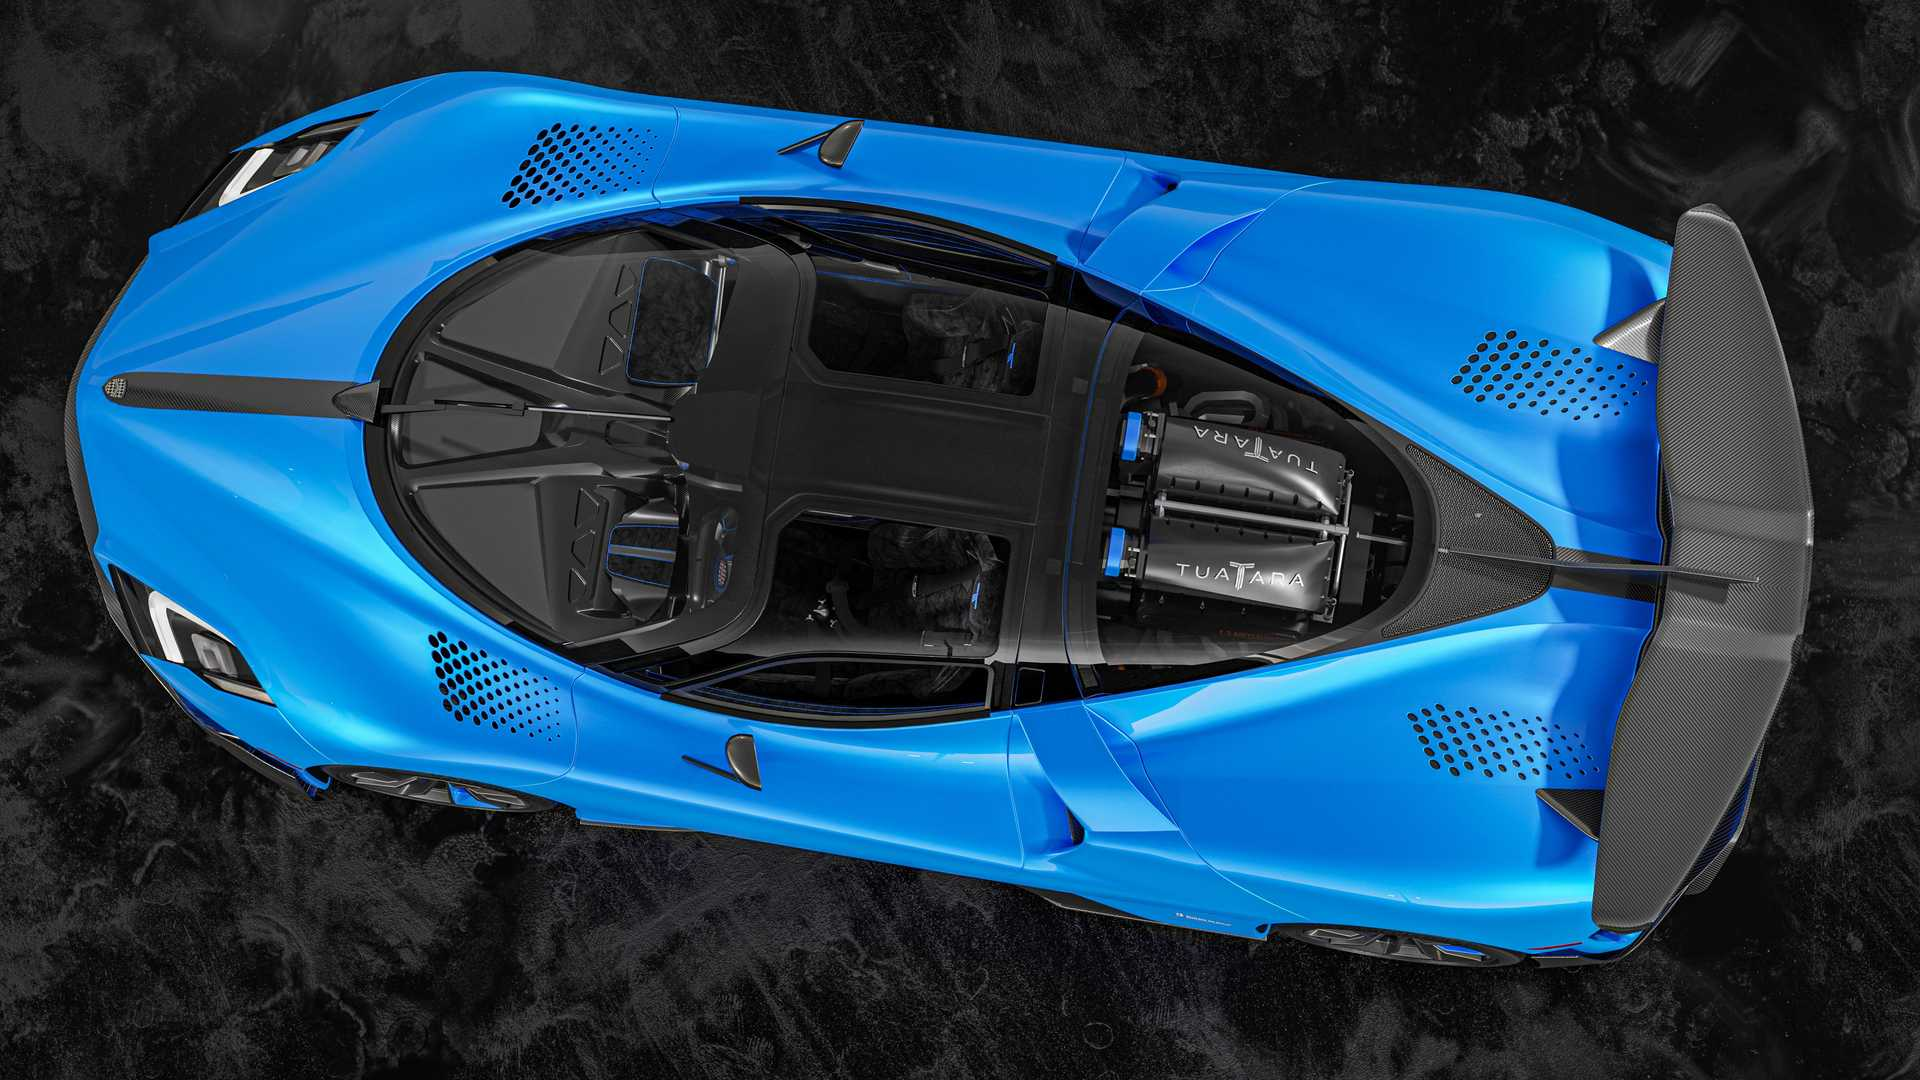 SSC North America caused quite some ripples back in October 2020 when it claimed that its Tuatara hypercar set a new world speed record among production cars. Piloted by Oliver Webb, the vehicle allegedly reached 316.1 miles per hour (508.73 km/h). Okay, you may now want to forget about than one.